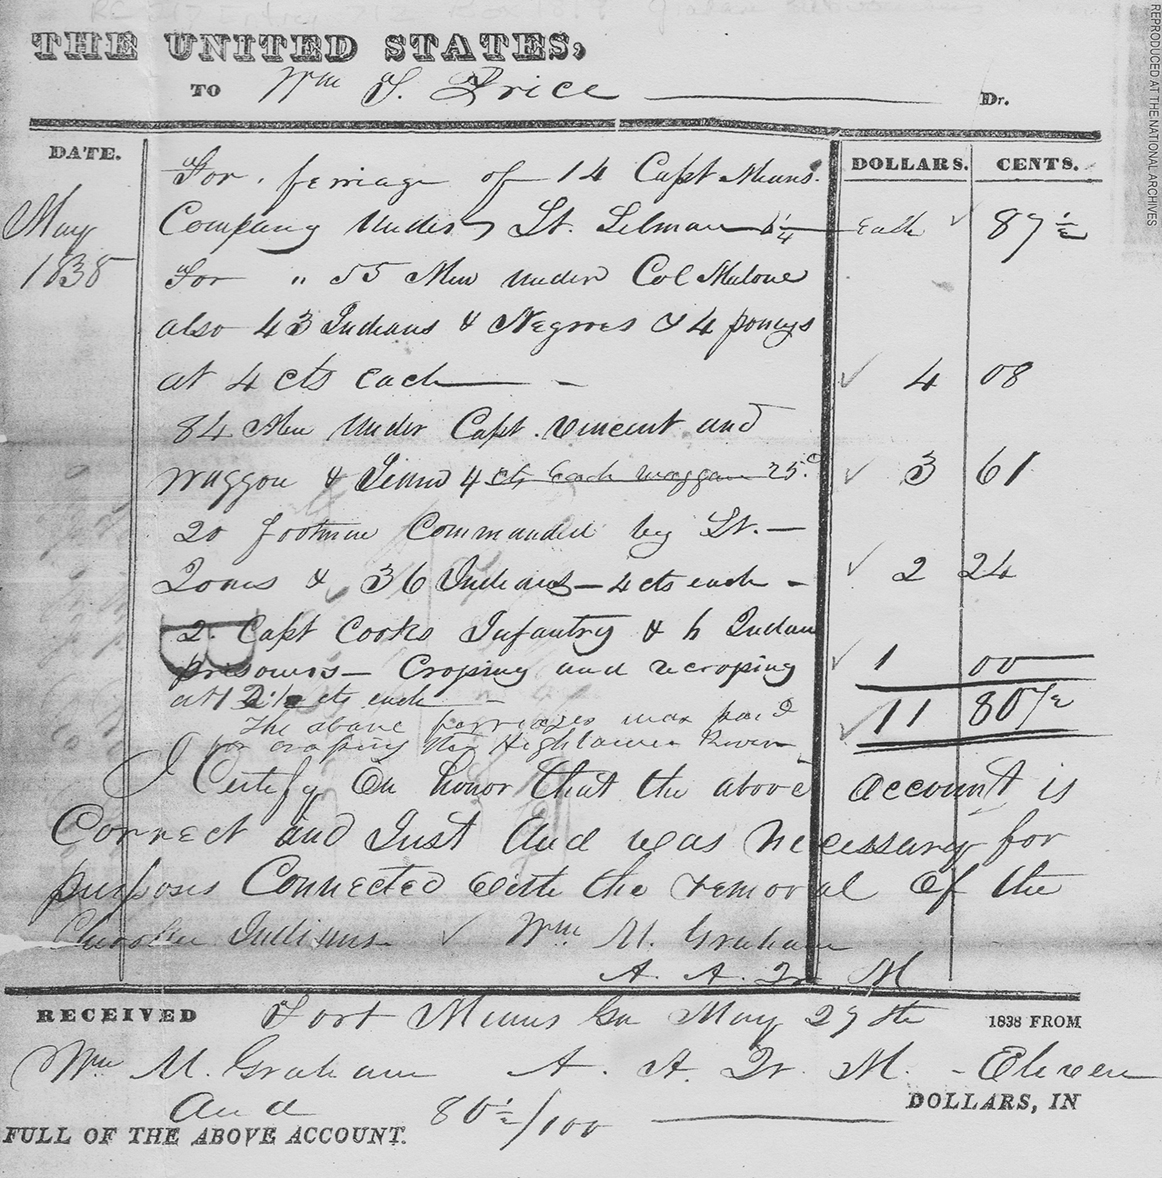 William Graham voucher 139 payment for ferriage to William T. Price, May 29, 1838. RG 217, Entry 712, Box 1819, National Archives. Image provided by Sarah H. Hill.